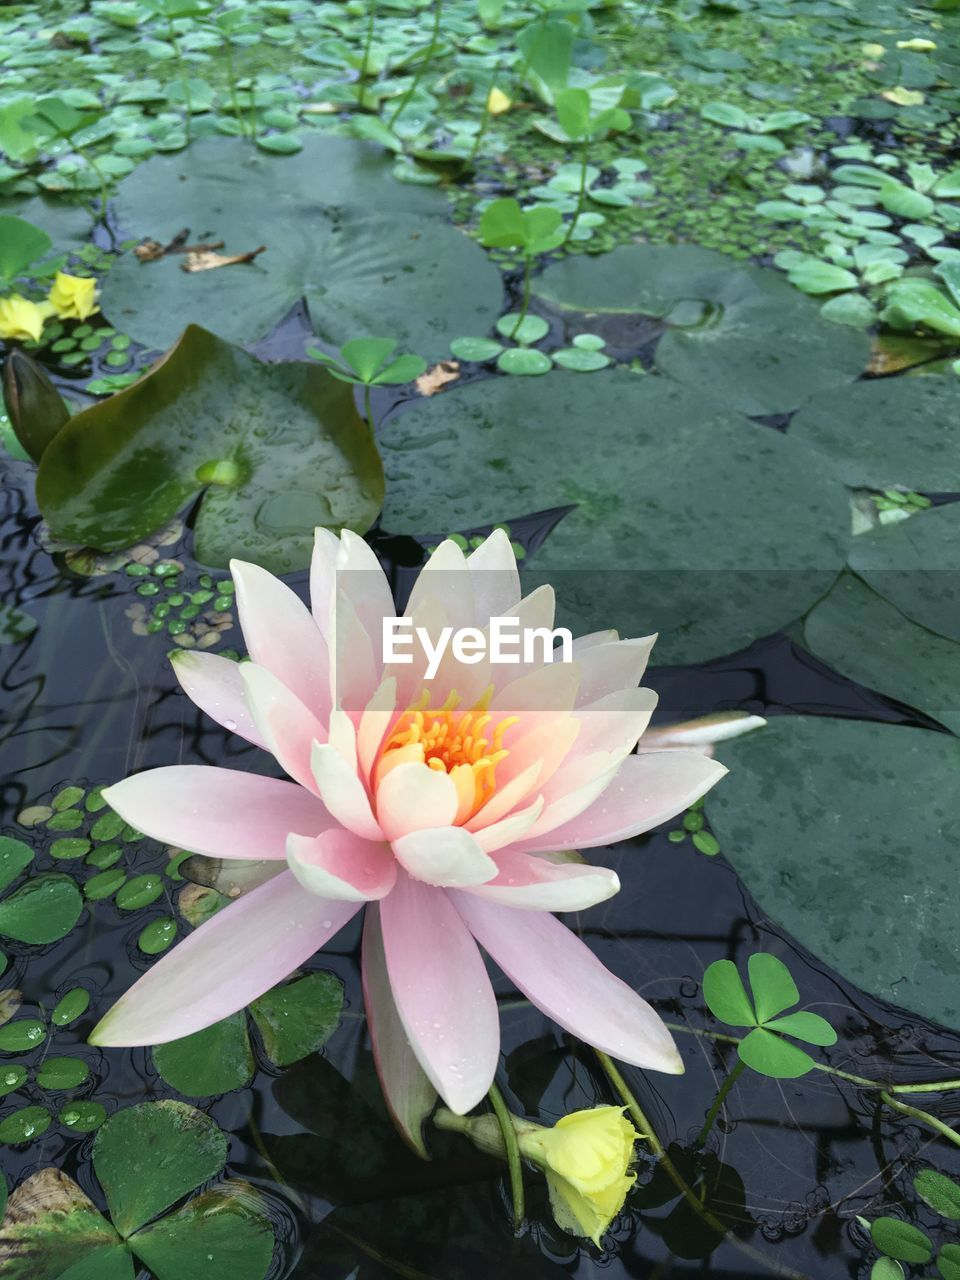 flower, flowering plant, plant, leaf, beauty in nature, plant part, growth, fragility, vulnerability, water lily, freshness, lake, petal, nature, inflorescence, flower head, water, high angle view, floating on water, pink color, lotus water lily, no people, outdoors, pollen, leaves